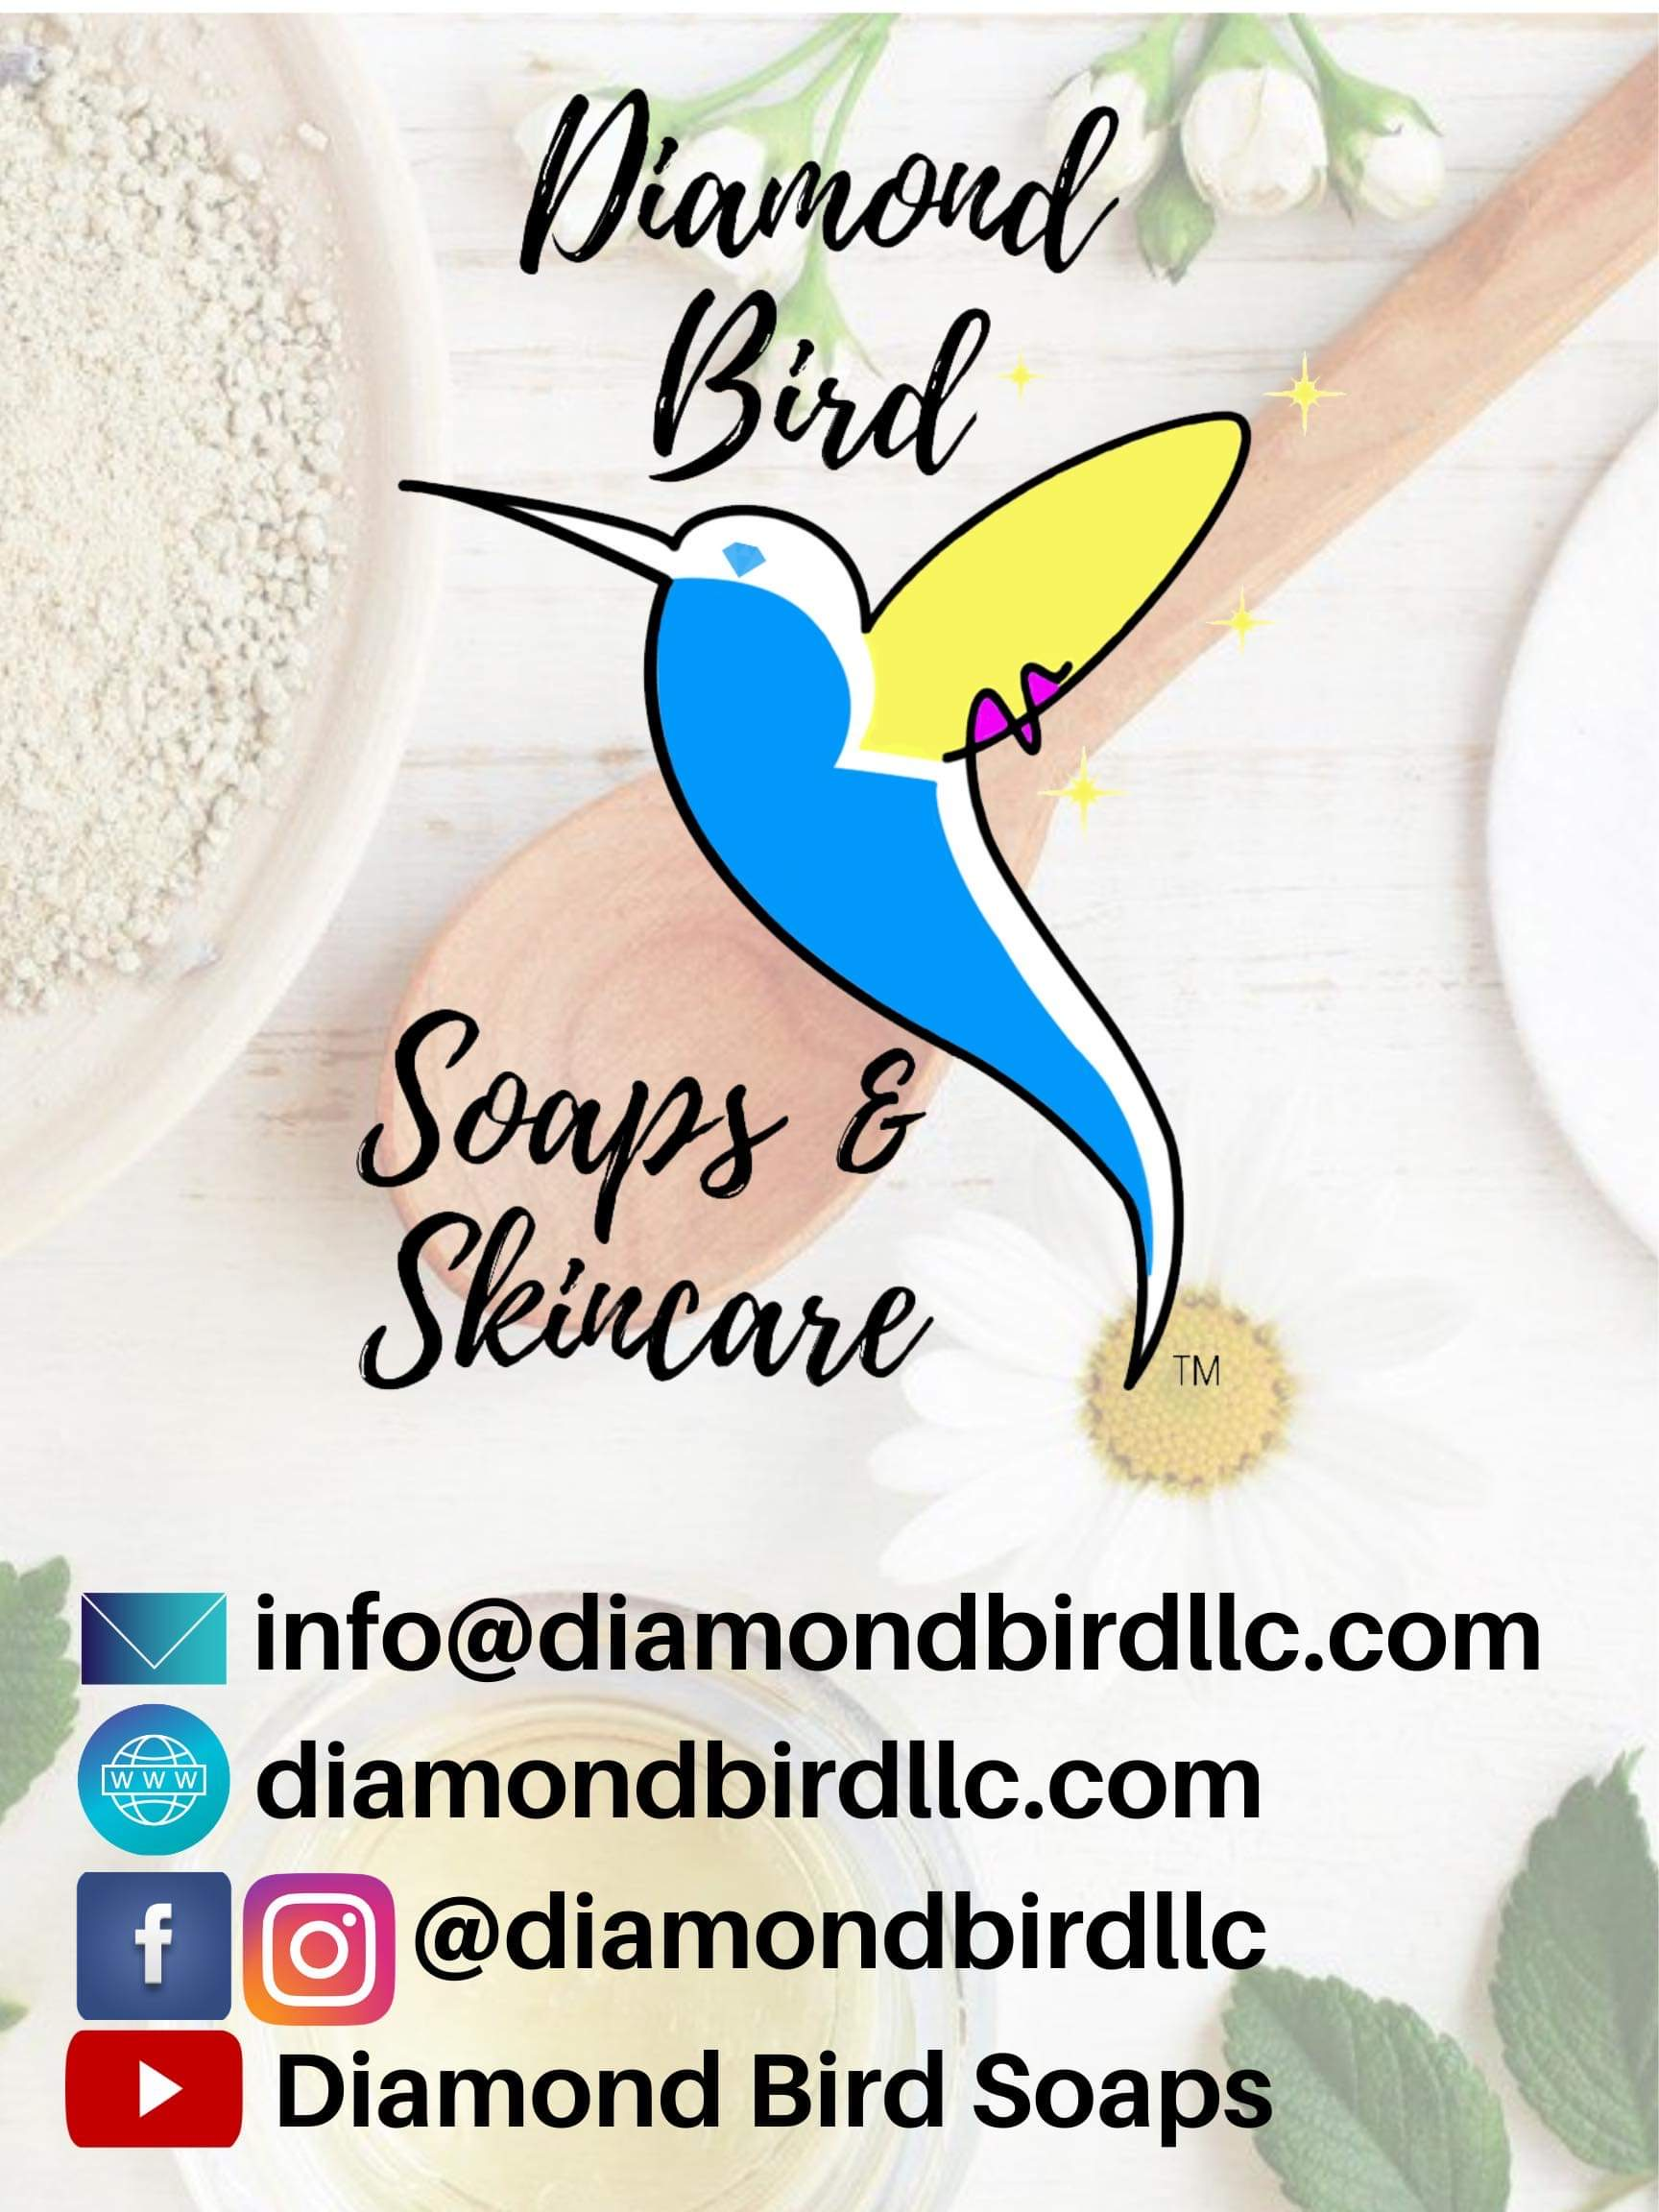 diamondbirdllc